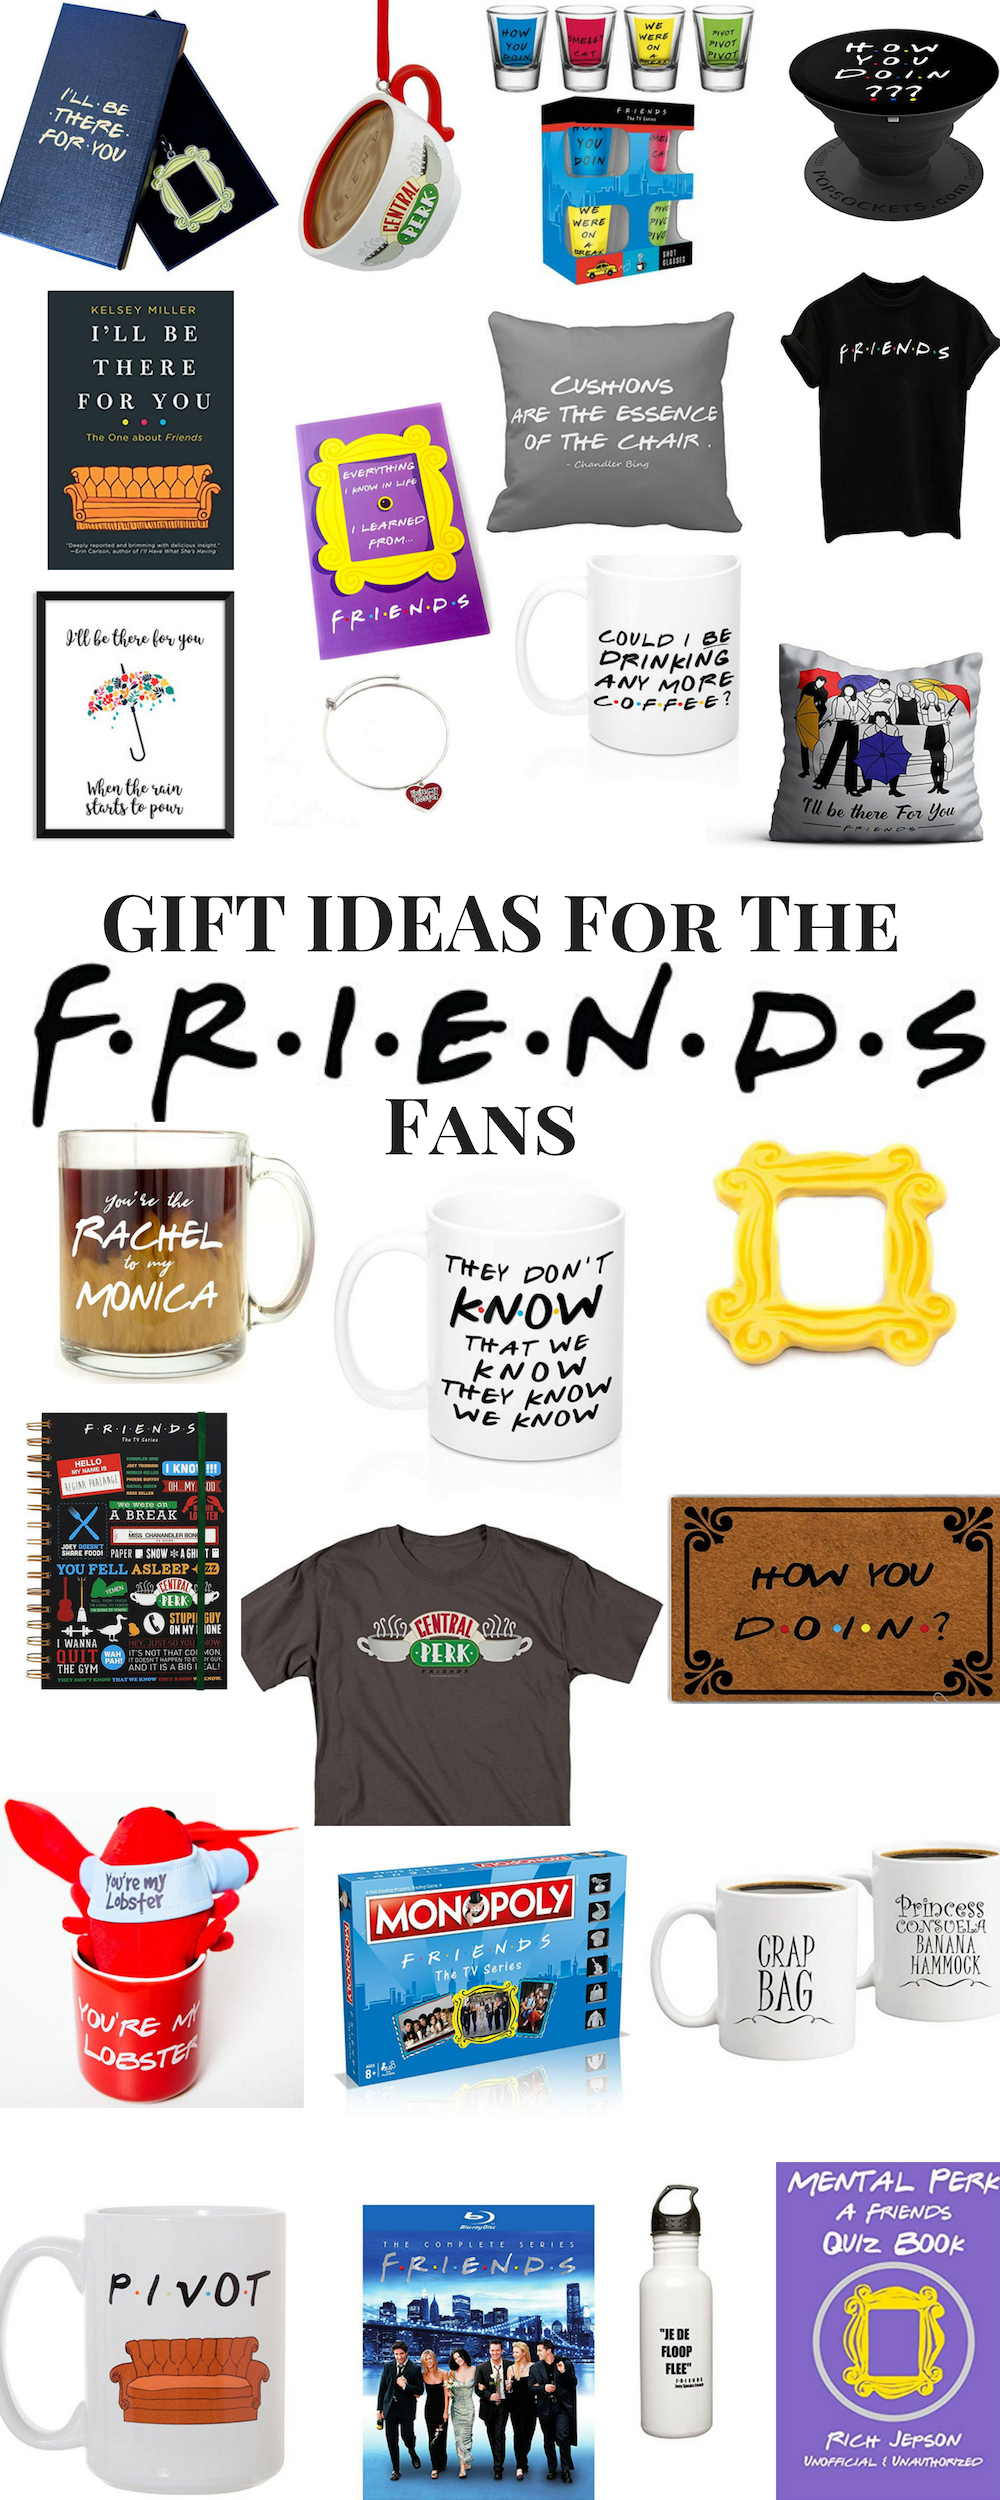 Friends TV show Gift Ideas. Friends Gift Guide. Best gifts for the Friends fan.